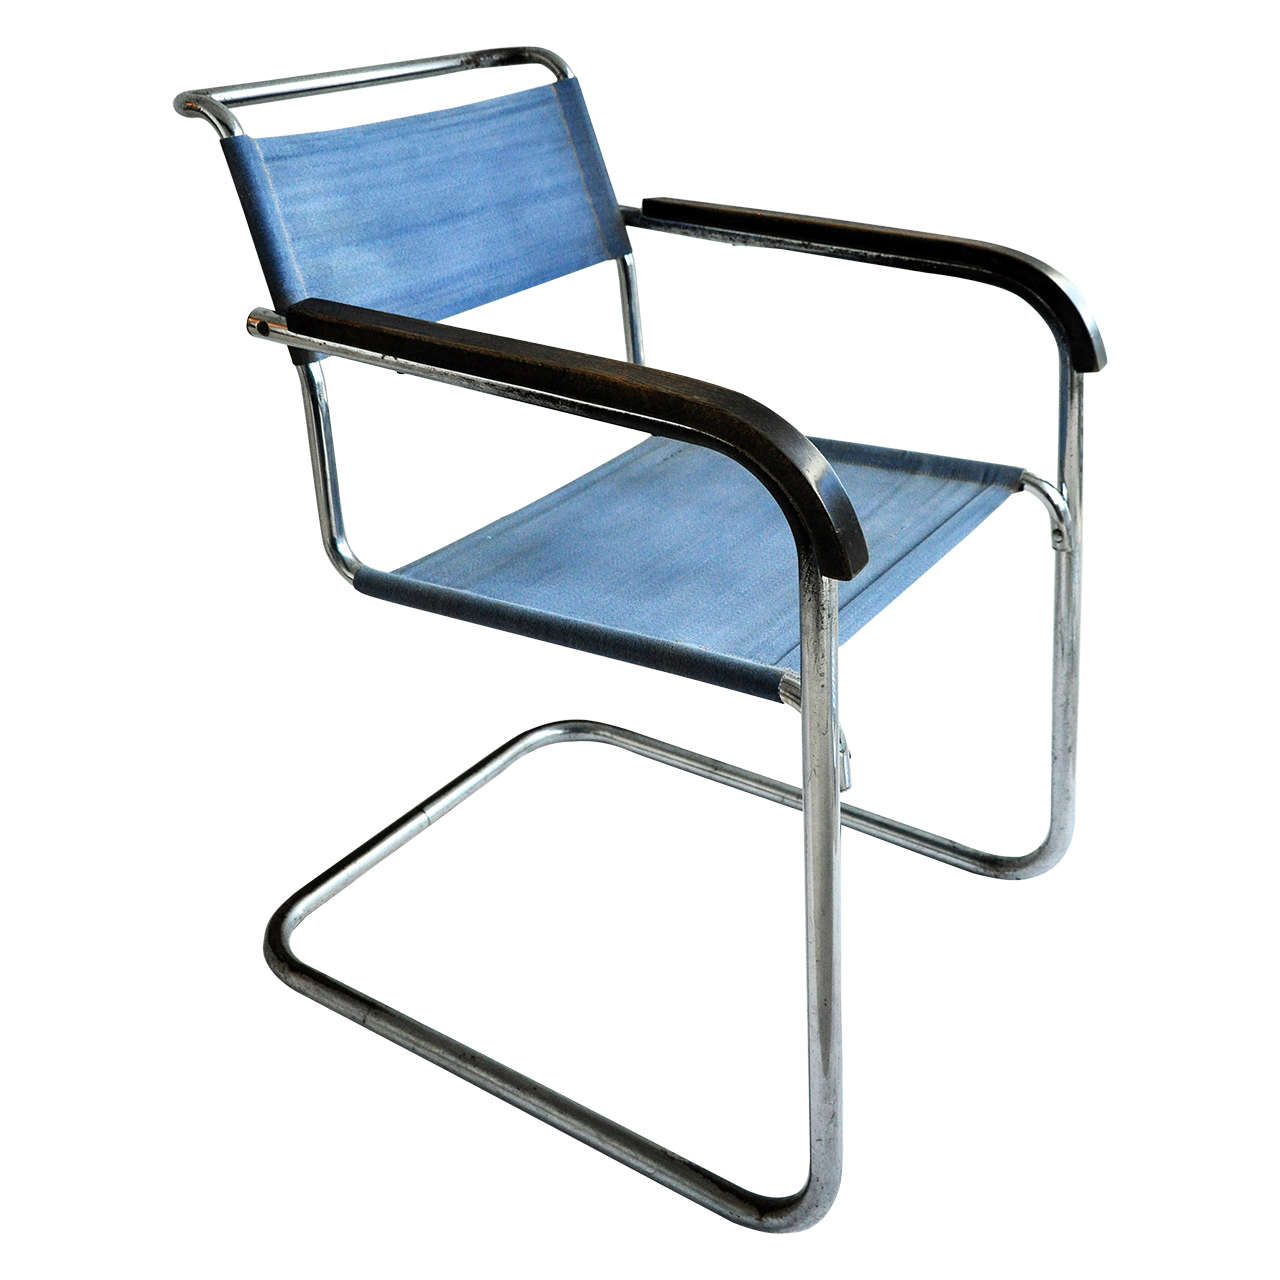 Marcel Breuer Tubular Steel Armchair for Thonet Bauhaus For Sale  sc 1 st  1stDibs & Marcel Breuer Tubular Steel Armchair for Thonet Bauhaus at 1stdibs